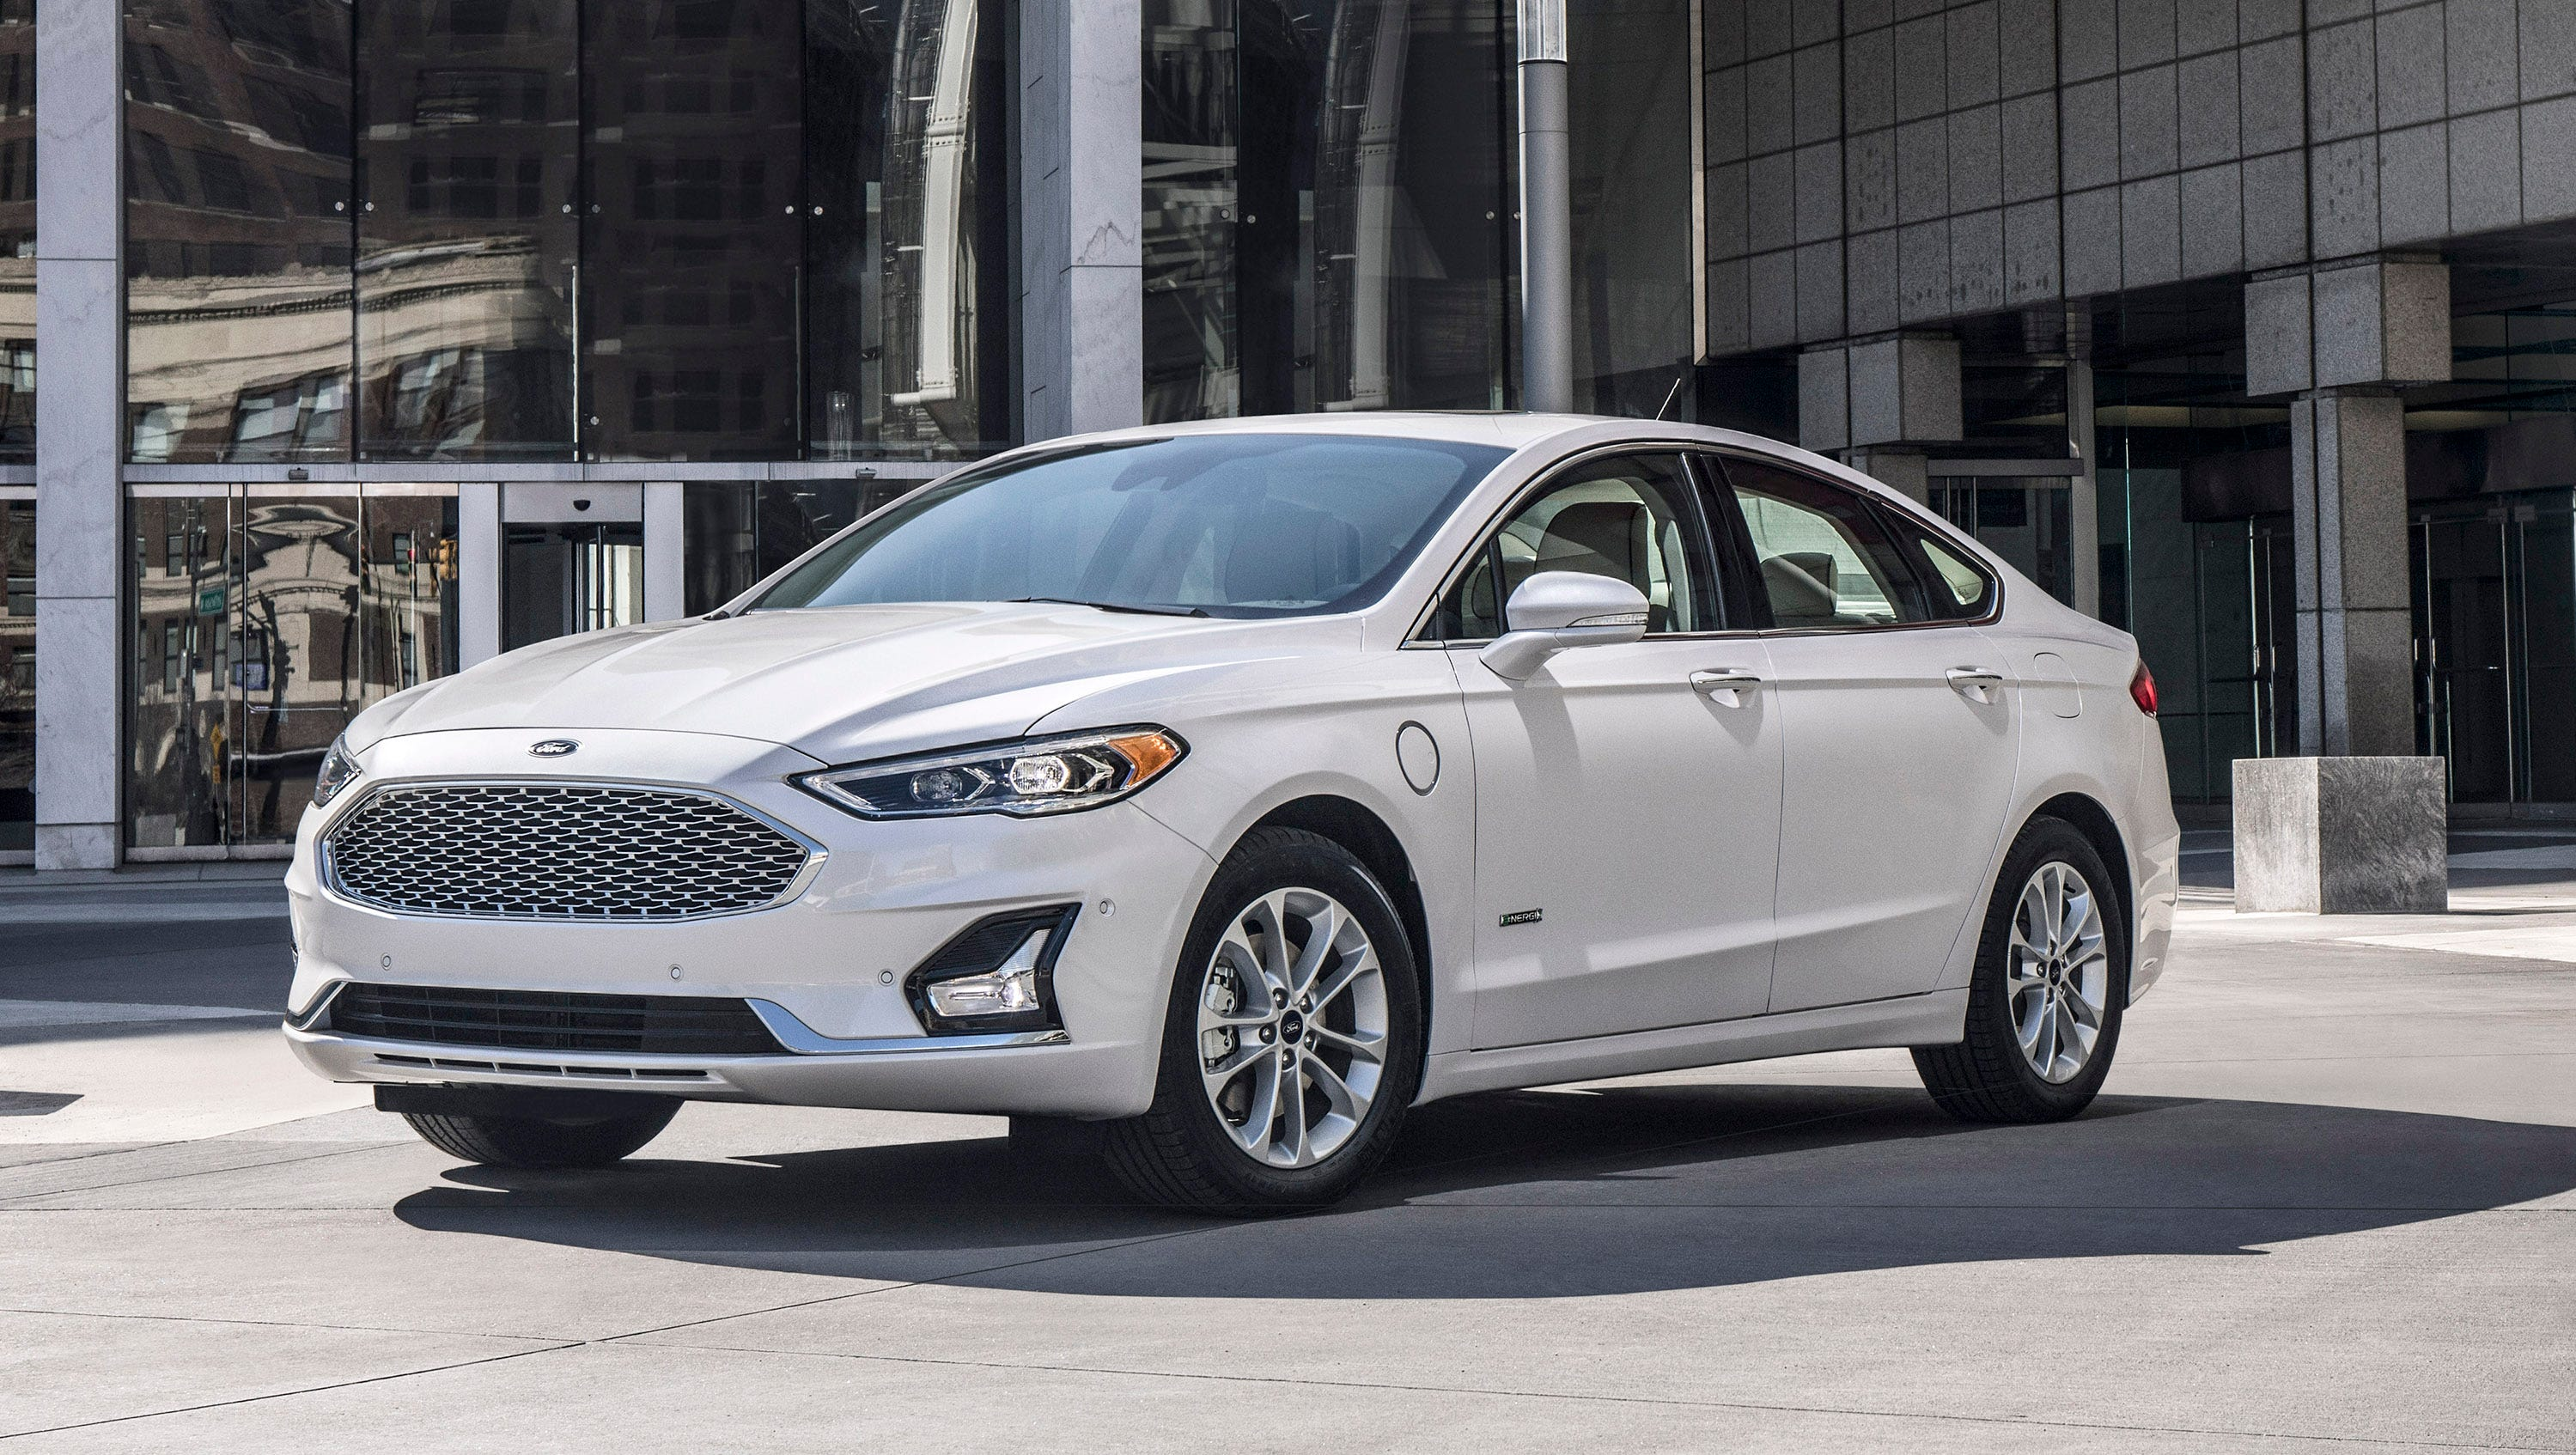 Youll Never Guess What The New Ford Fusion Looks Like